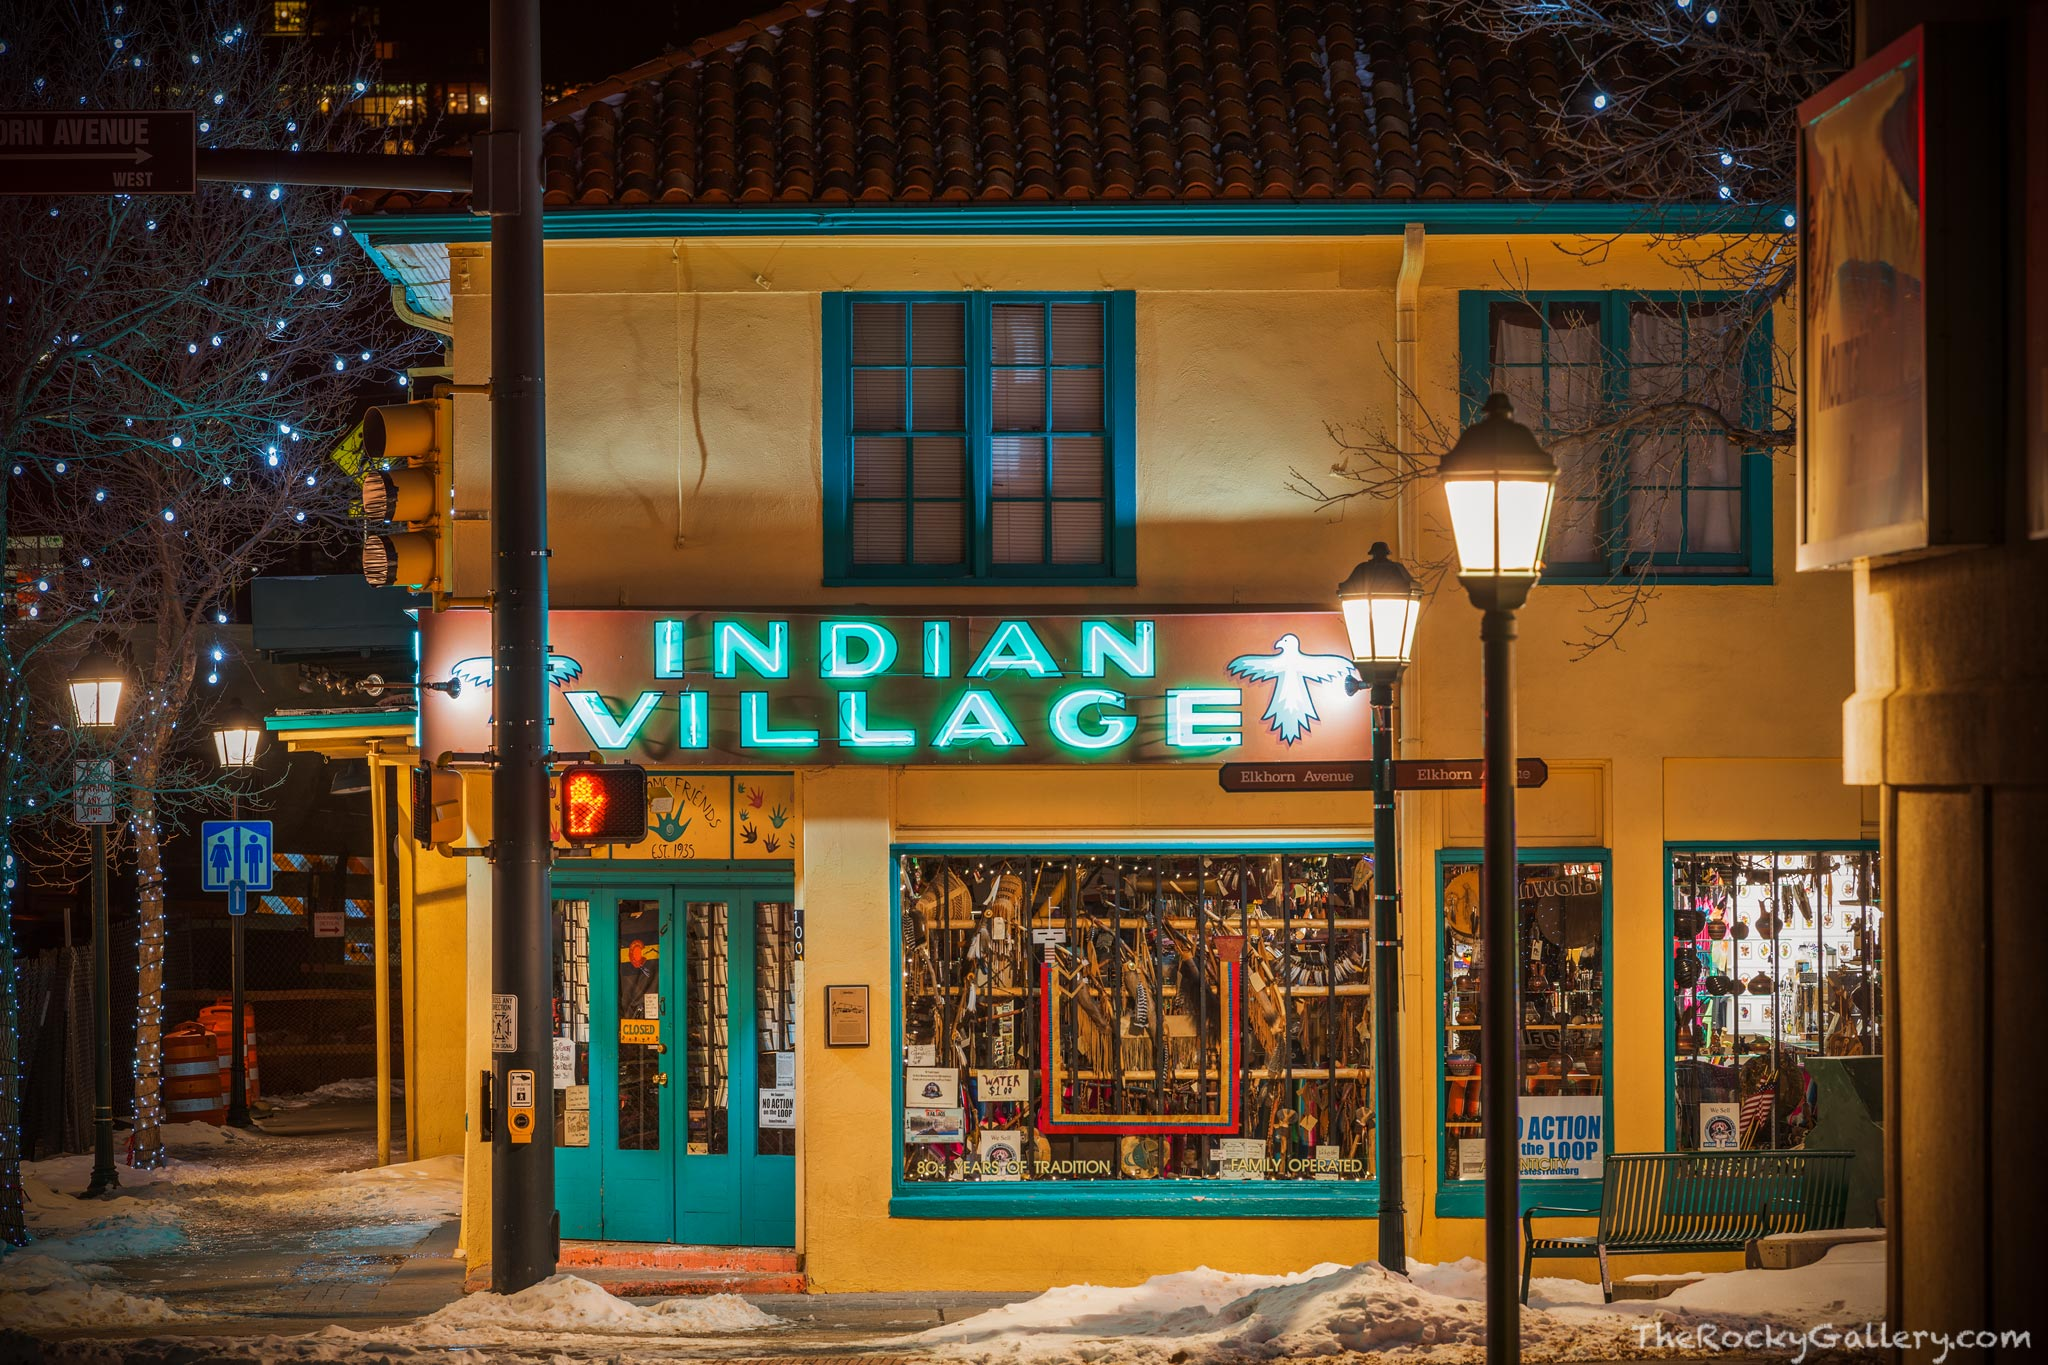 Millers Indian Village,Elkhorn Ave,Moraine Ave,100 W. Elkhorn,RMNP,Curios,Colorado,Night,January,Winter,Rocky Mountain National Park,Neon,Sign,Street,downtown, photo